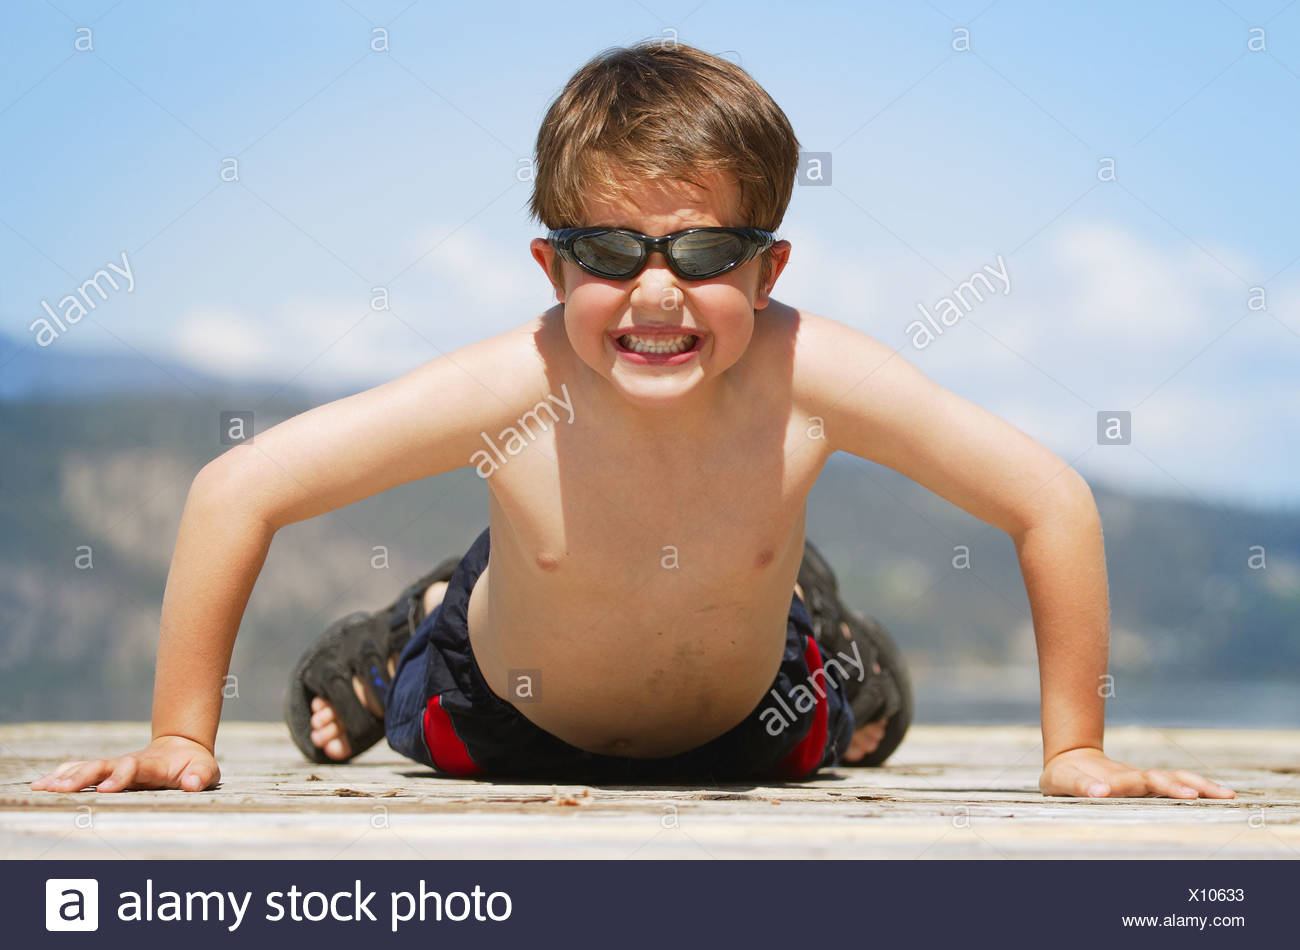 Child does a pushup - Stock Image